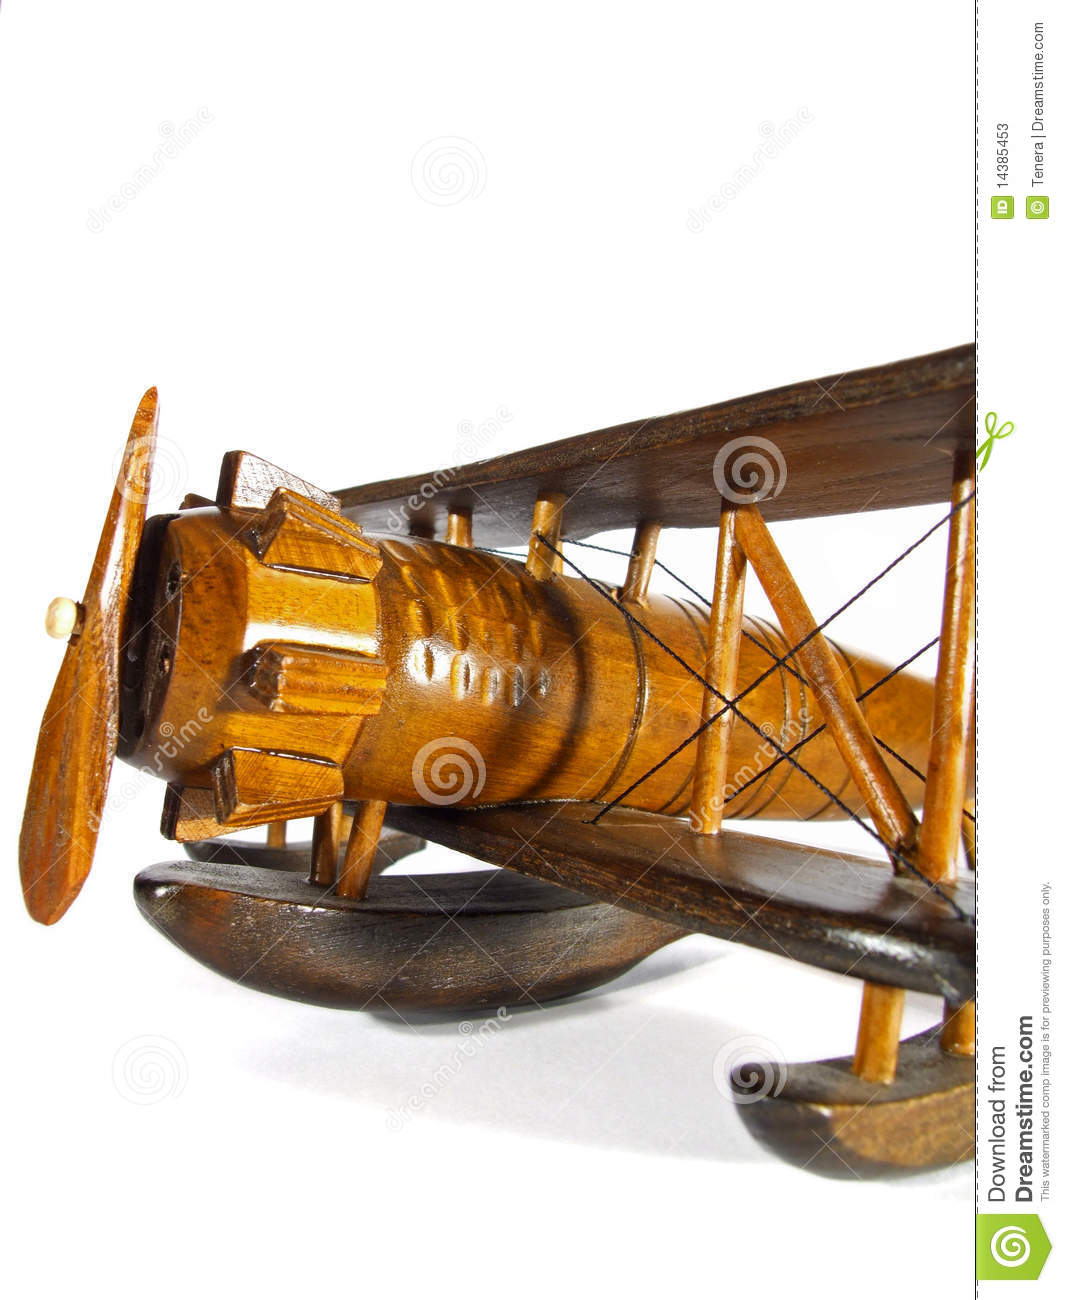 Wooden Toy Airplane Stock Photos Image 14385453